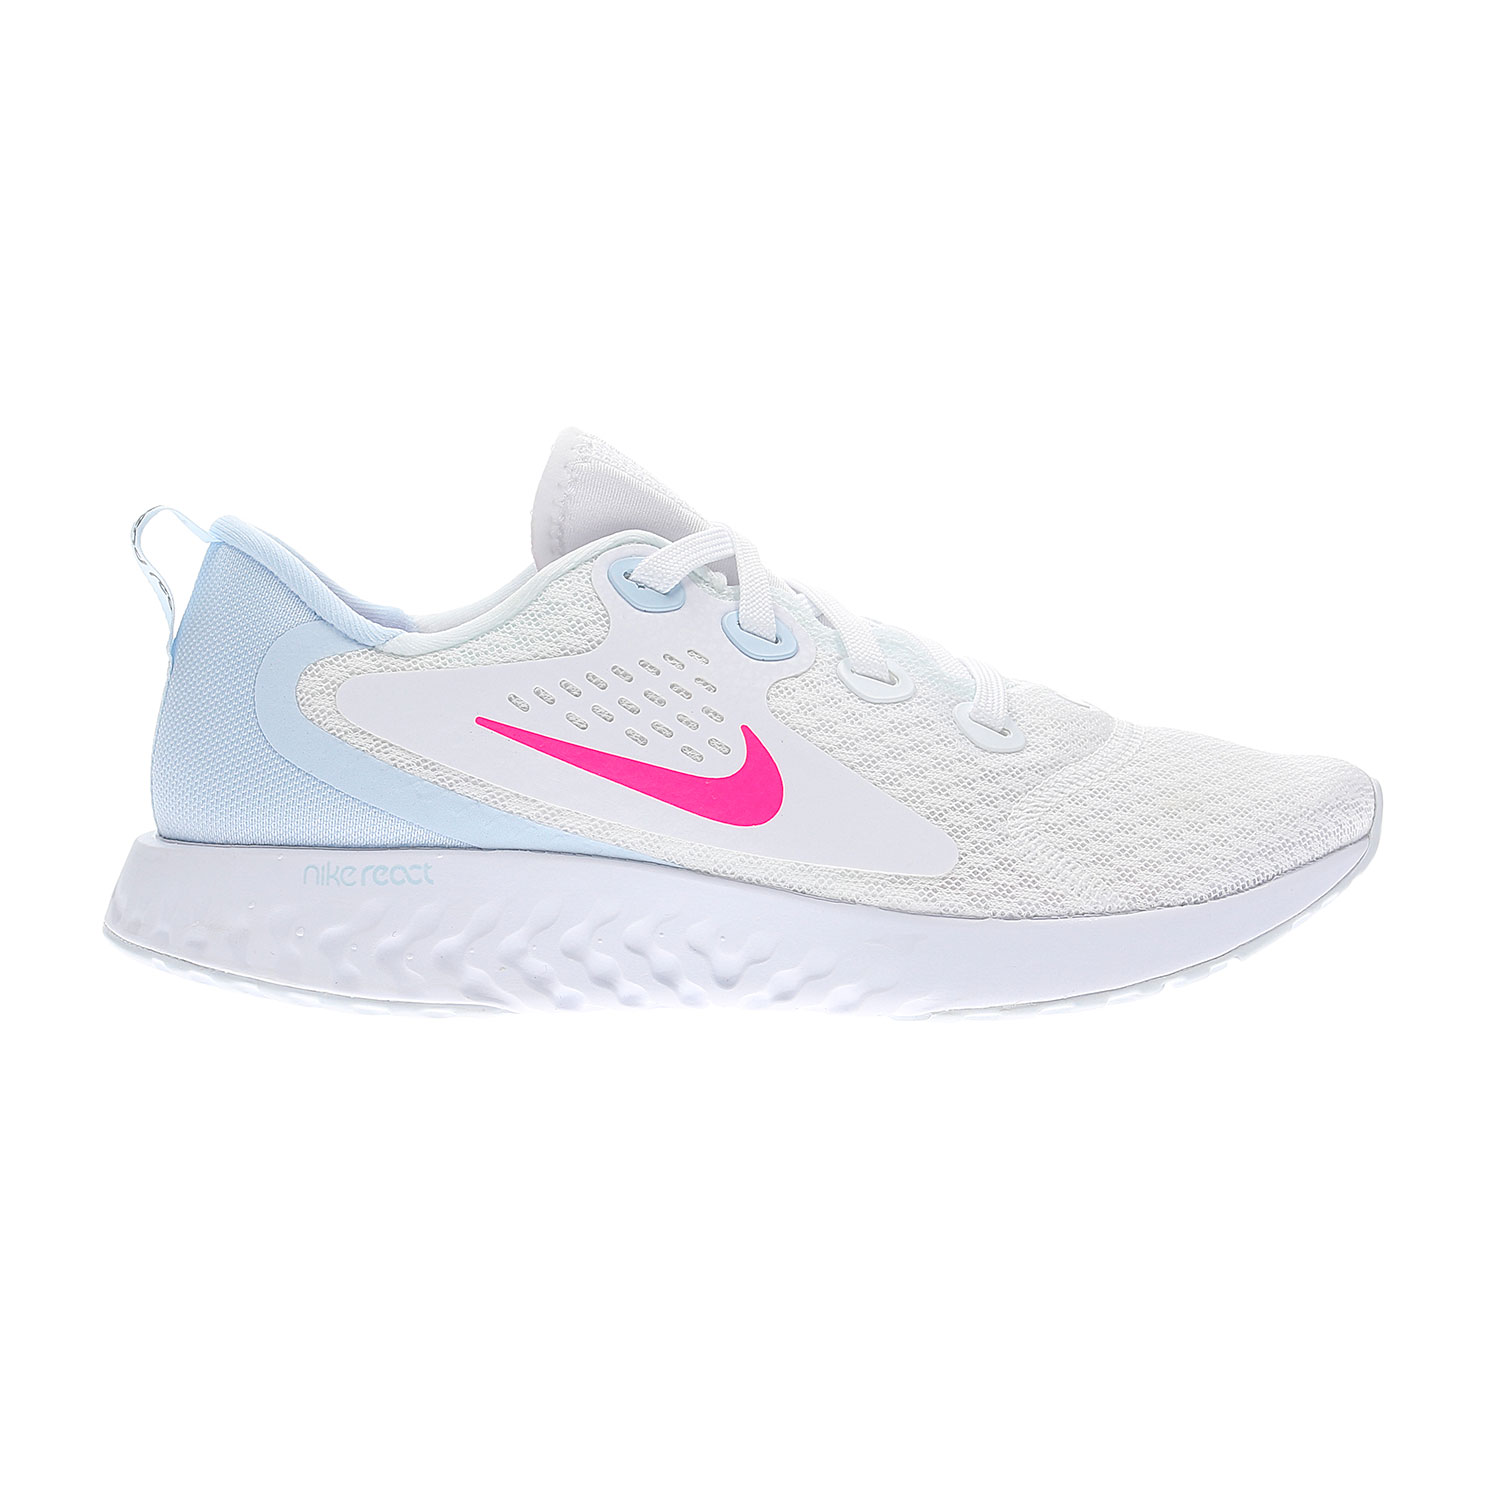 234f1afdf2df Nike Legend React Women's Running Shoes - White/Light Blue